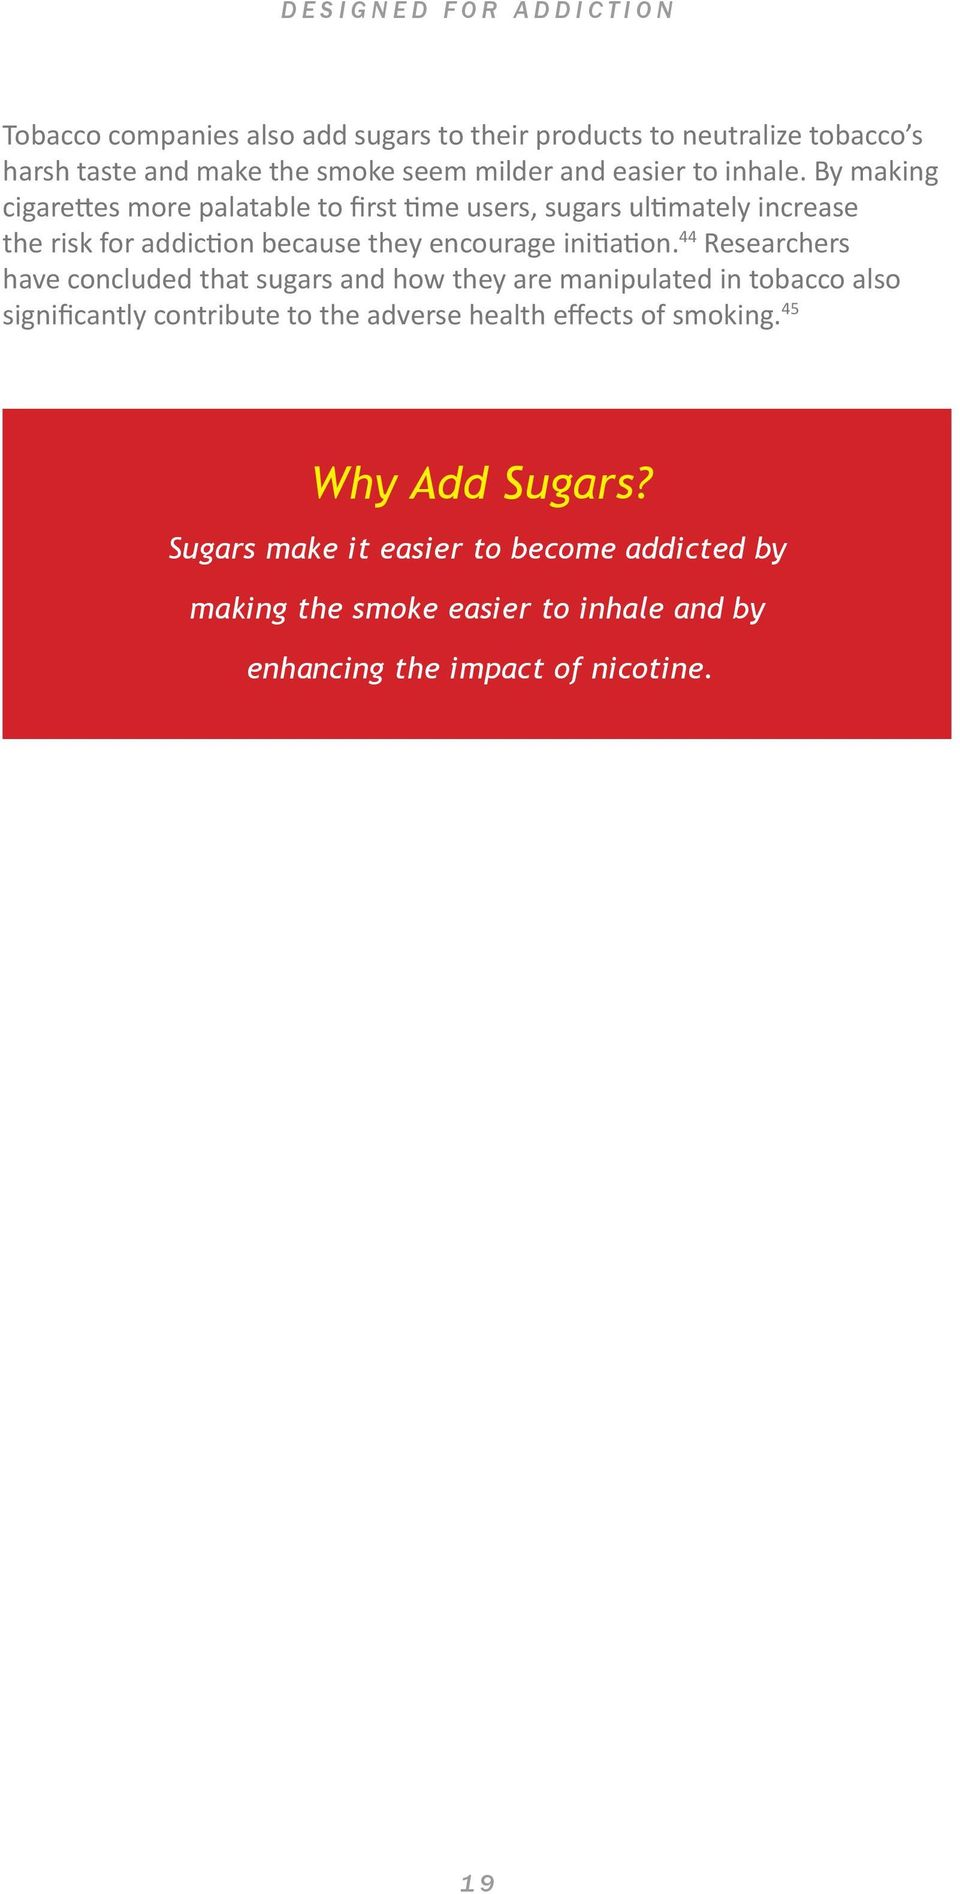 44 Researchers have concluded that sugars and how they are manipulated in tobacco also significantly contribute to the adverse health effects of